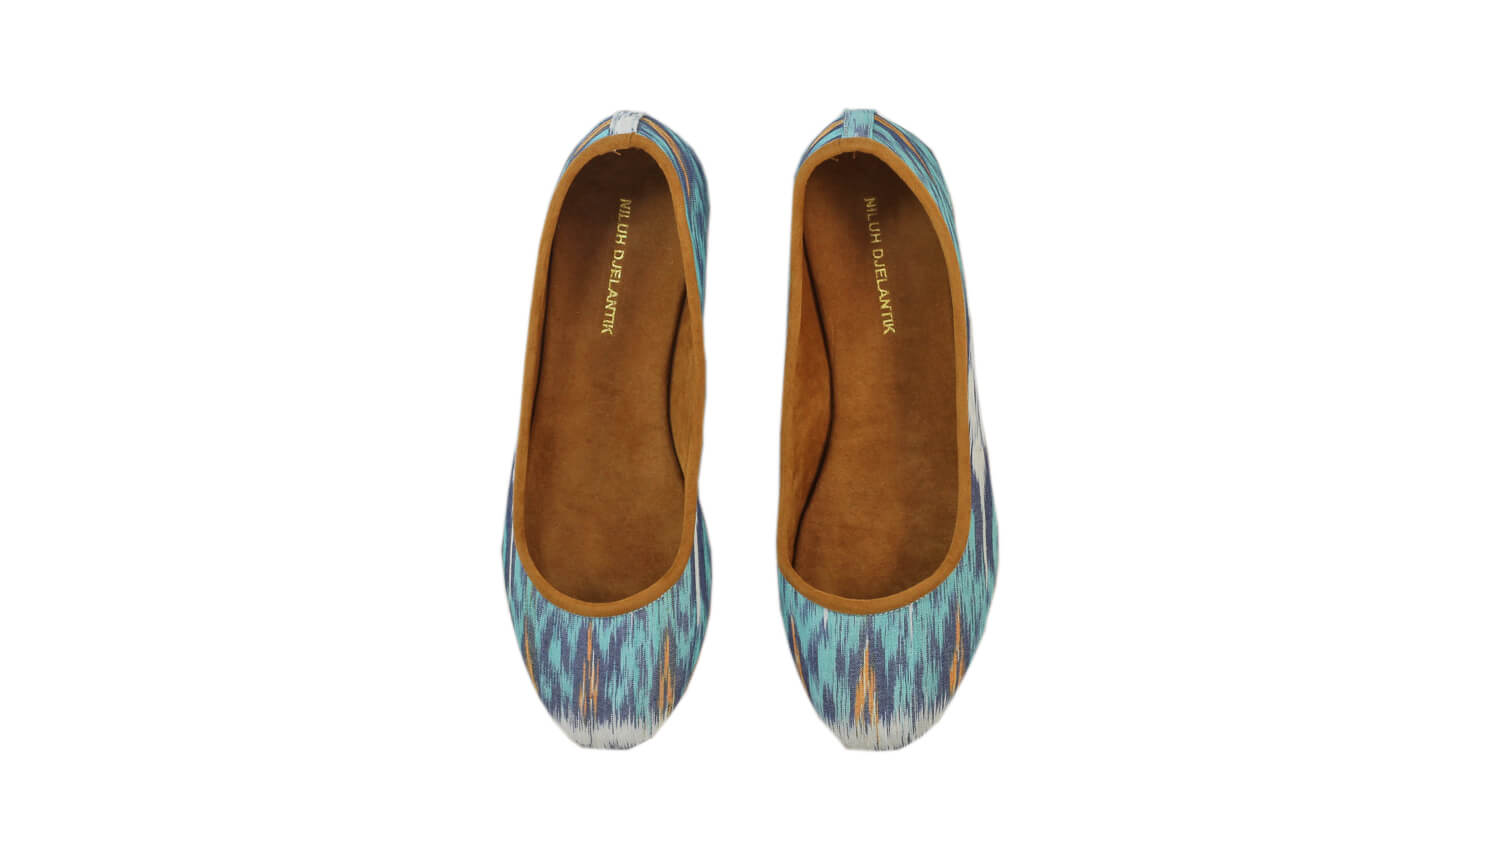 Leather-shoes-Kate 20mm Ballet - Aqua & Grey Handwoven Ikat-flats ballet-NILUH DJELANTIK-NILUH DJELANTIK